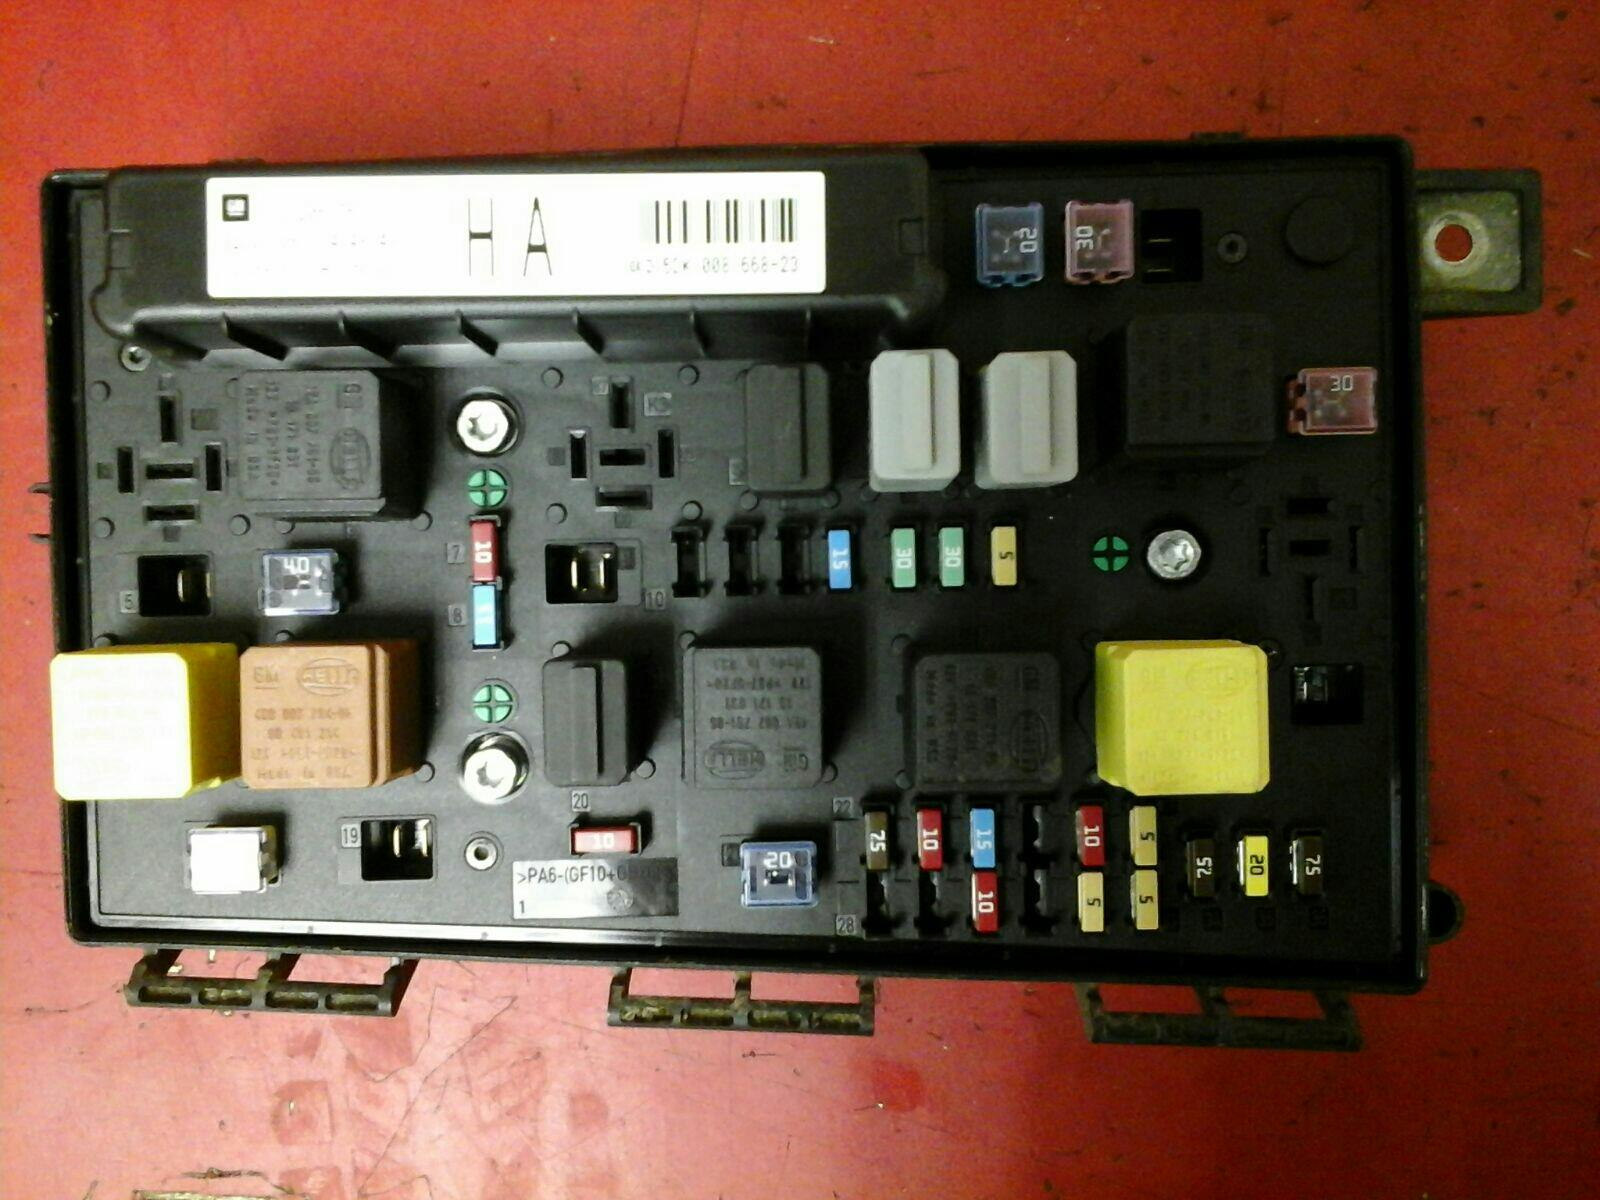 fuse box on a astra mk5 vauxhall astra h mk5 front bcm electric control uec fuse box ha 2004-2010 used and spare parts ... #11